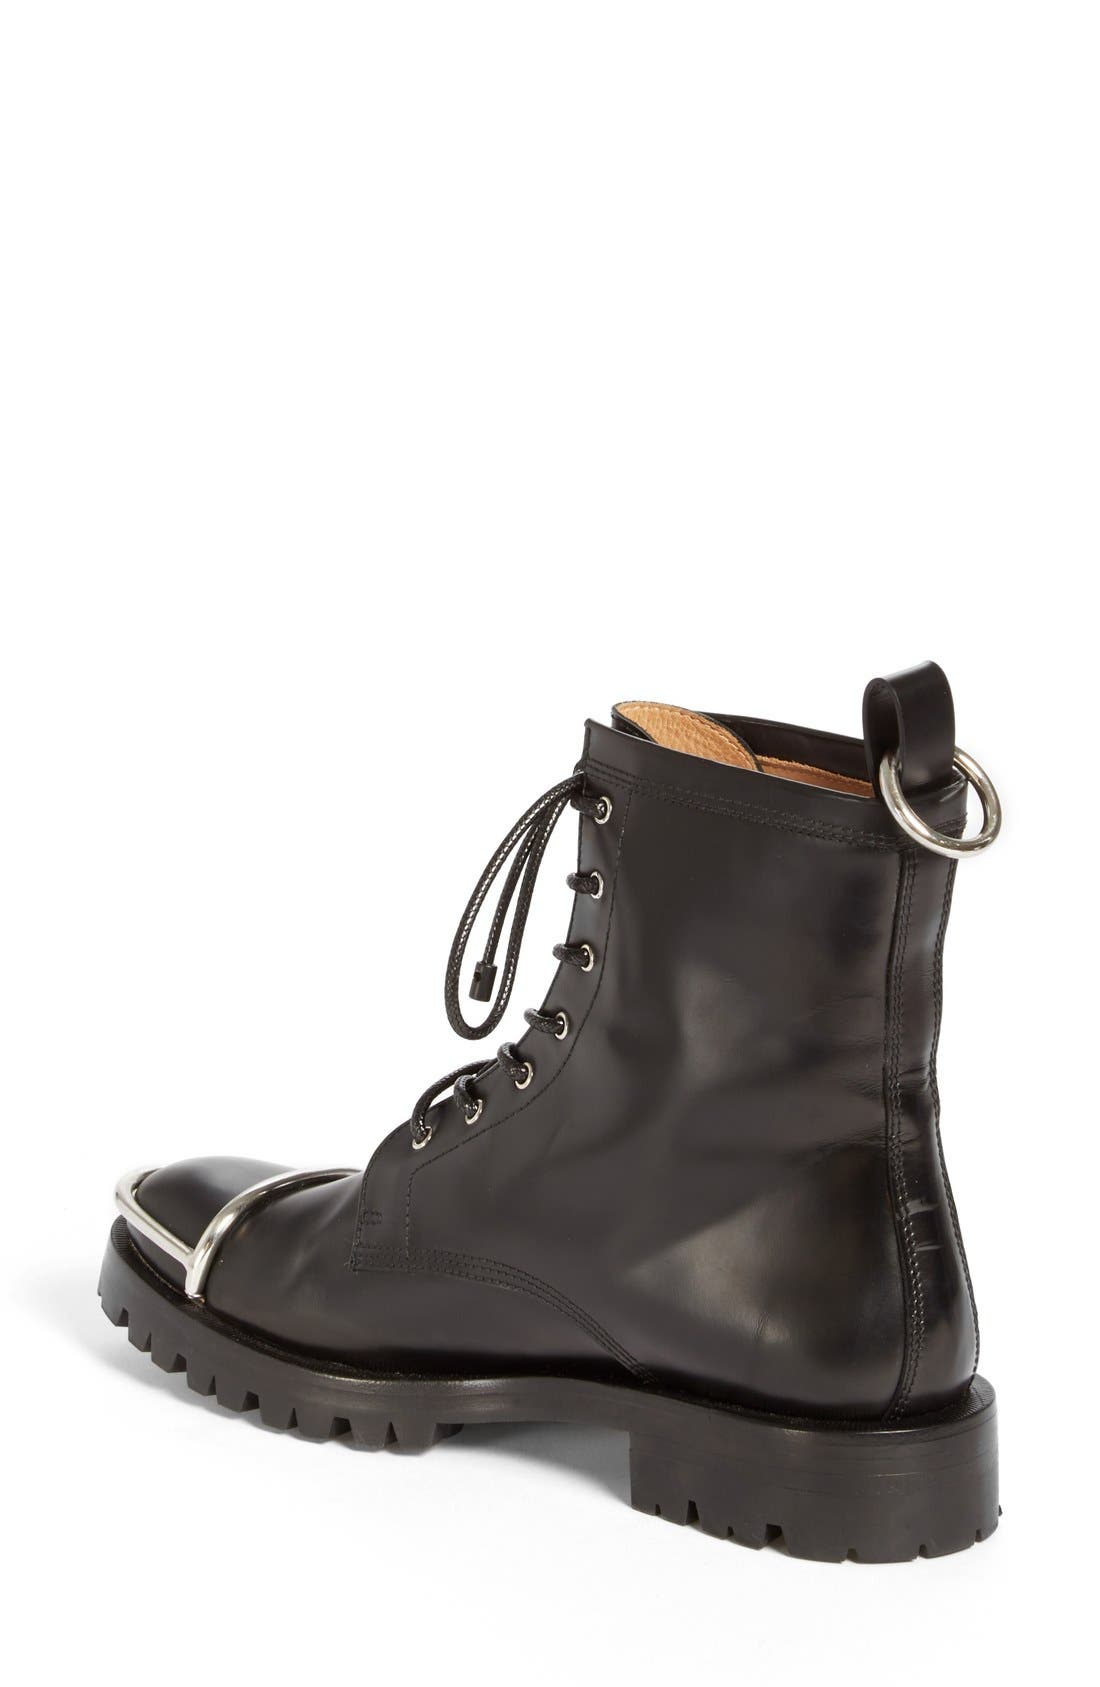 Alternate Image 2  - Alexander Wang 'Lyndon' Military Boot (Women)